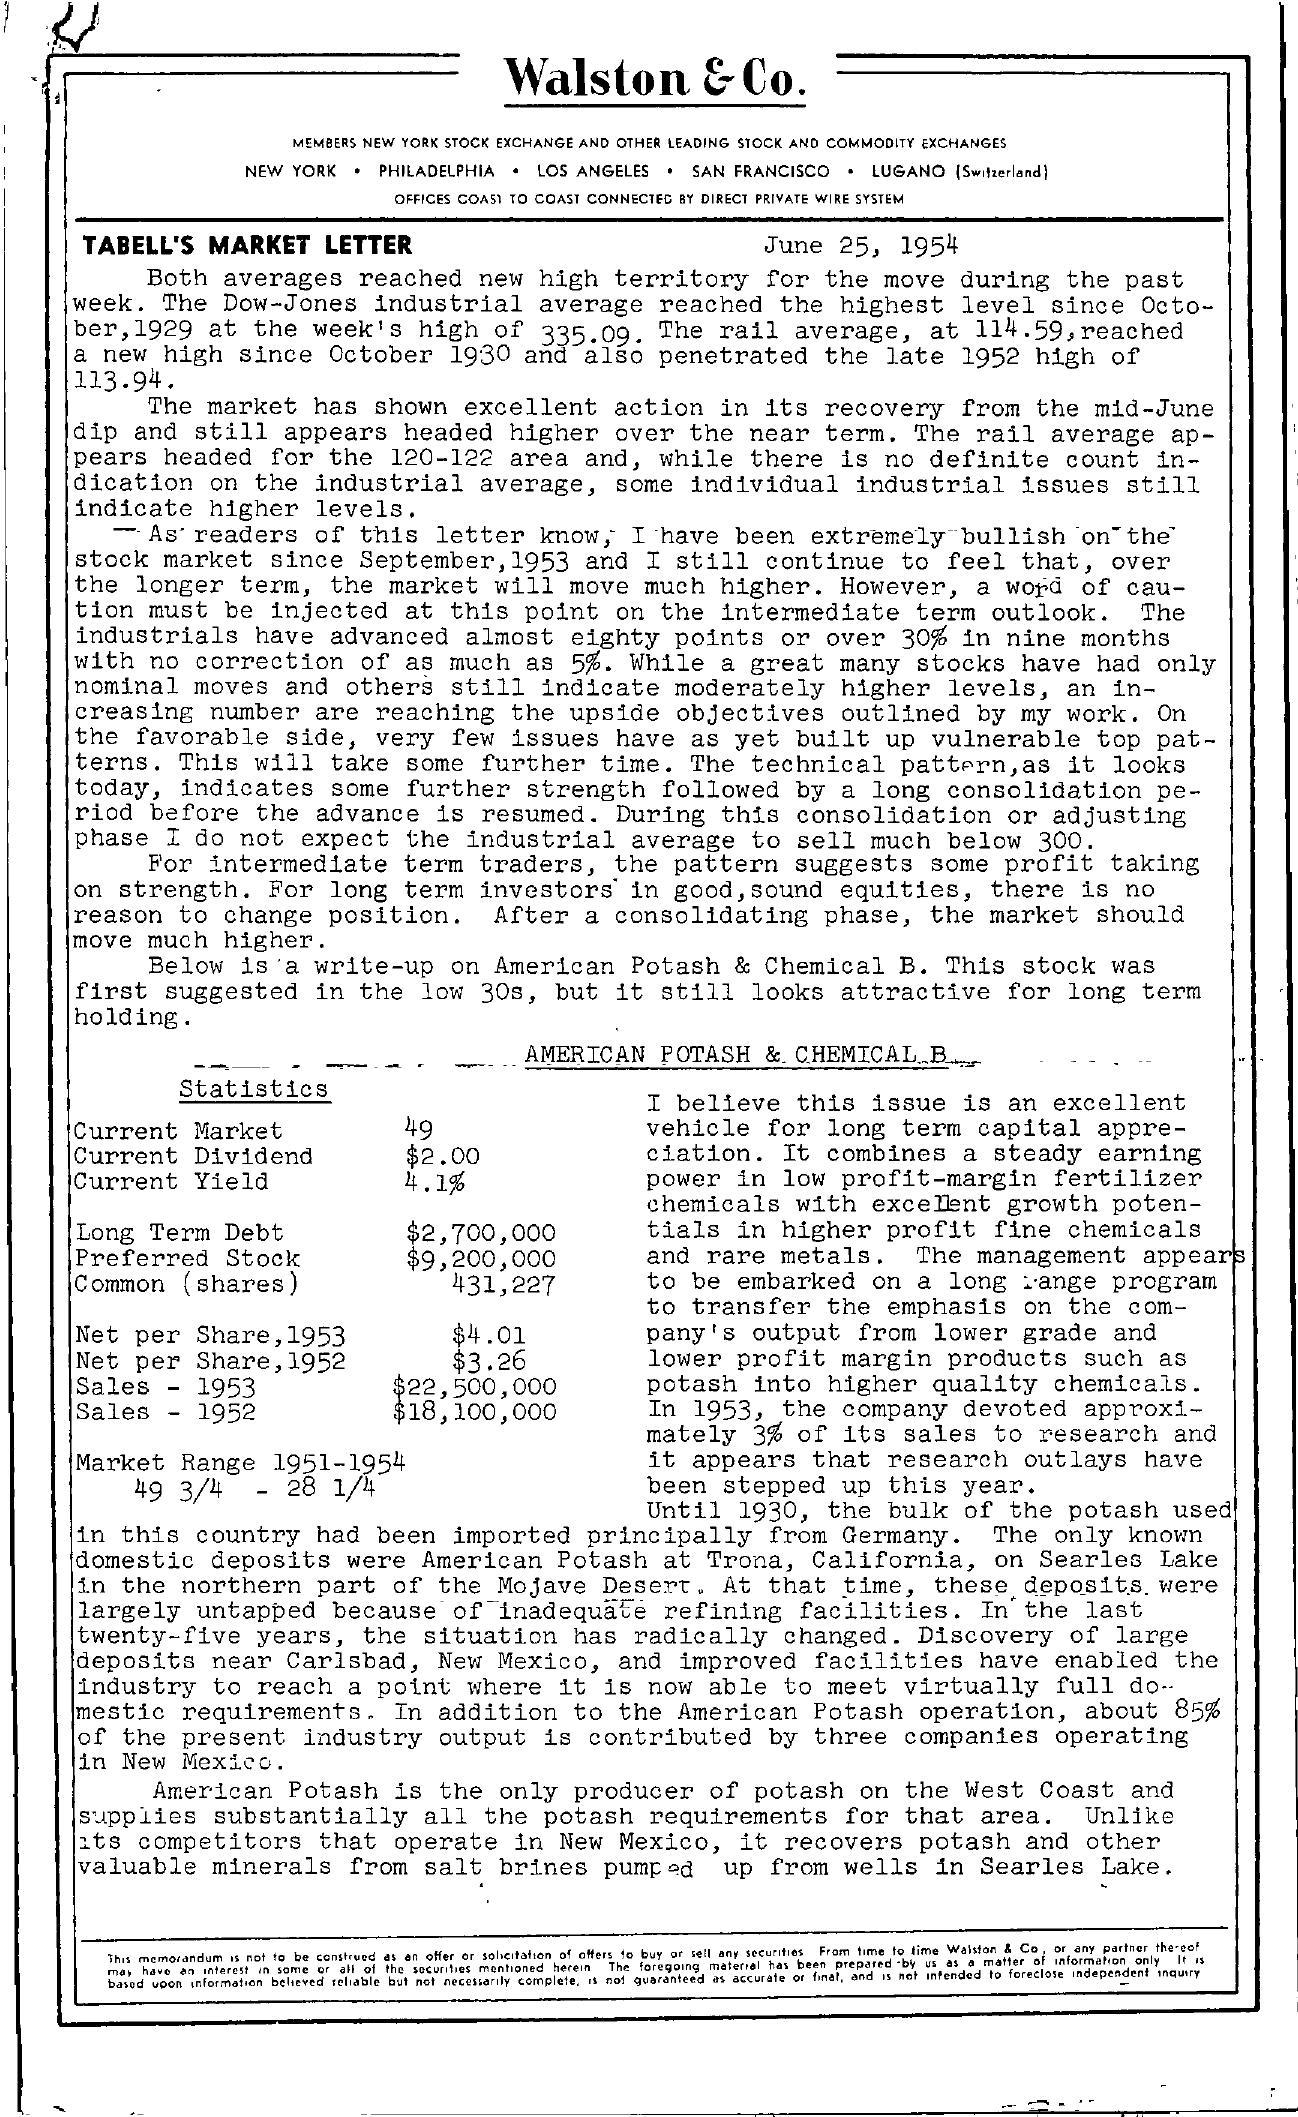 Tabell's Market Letter - June 25, 1954 page 1